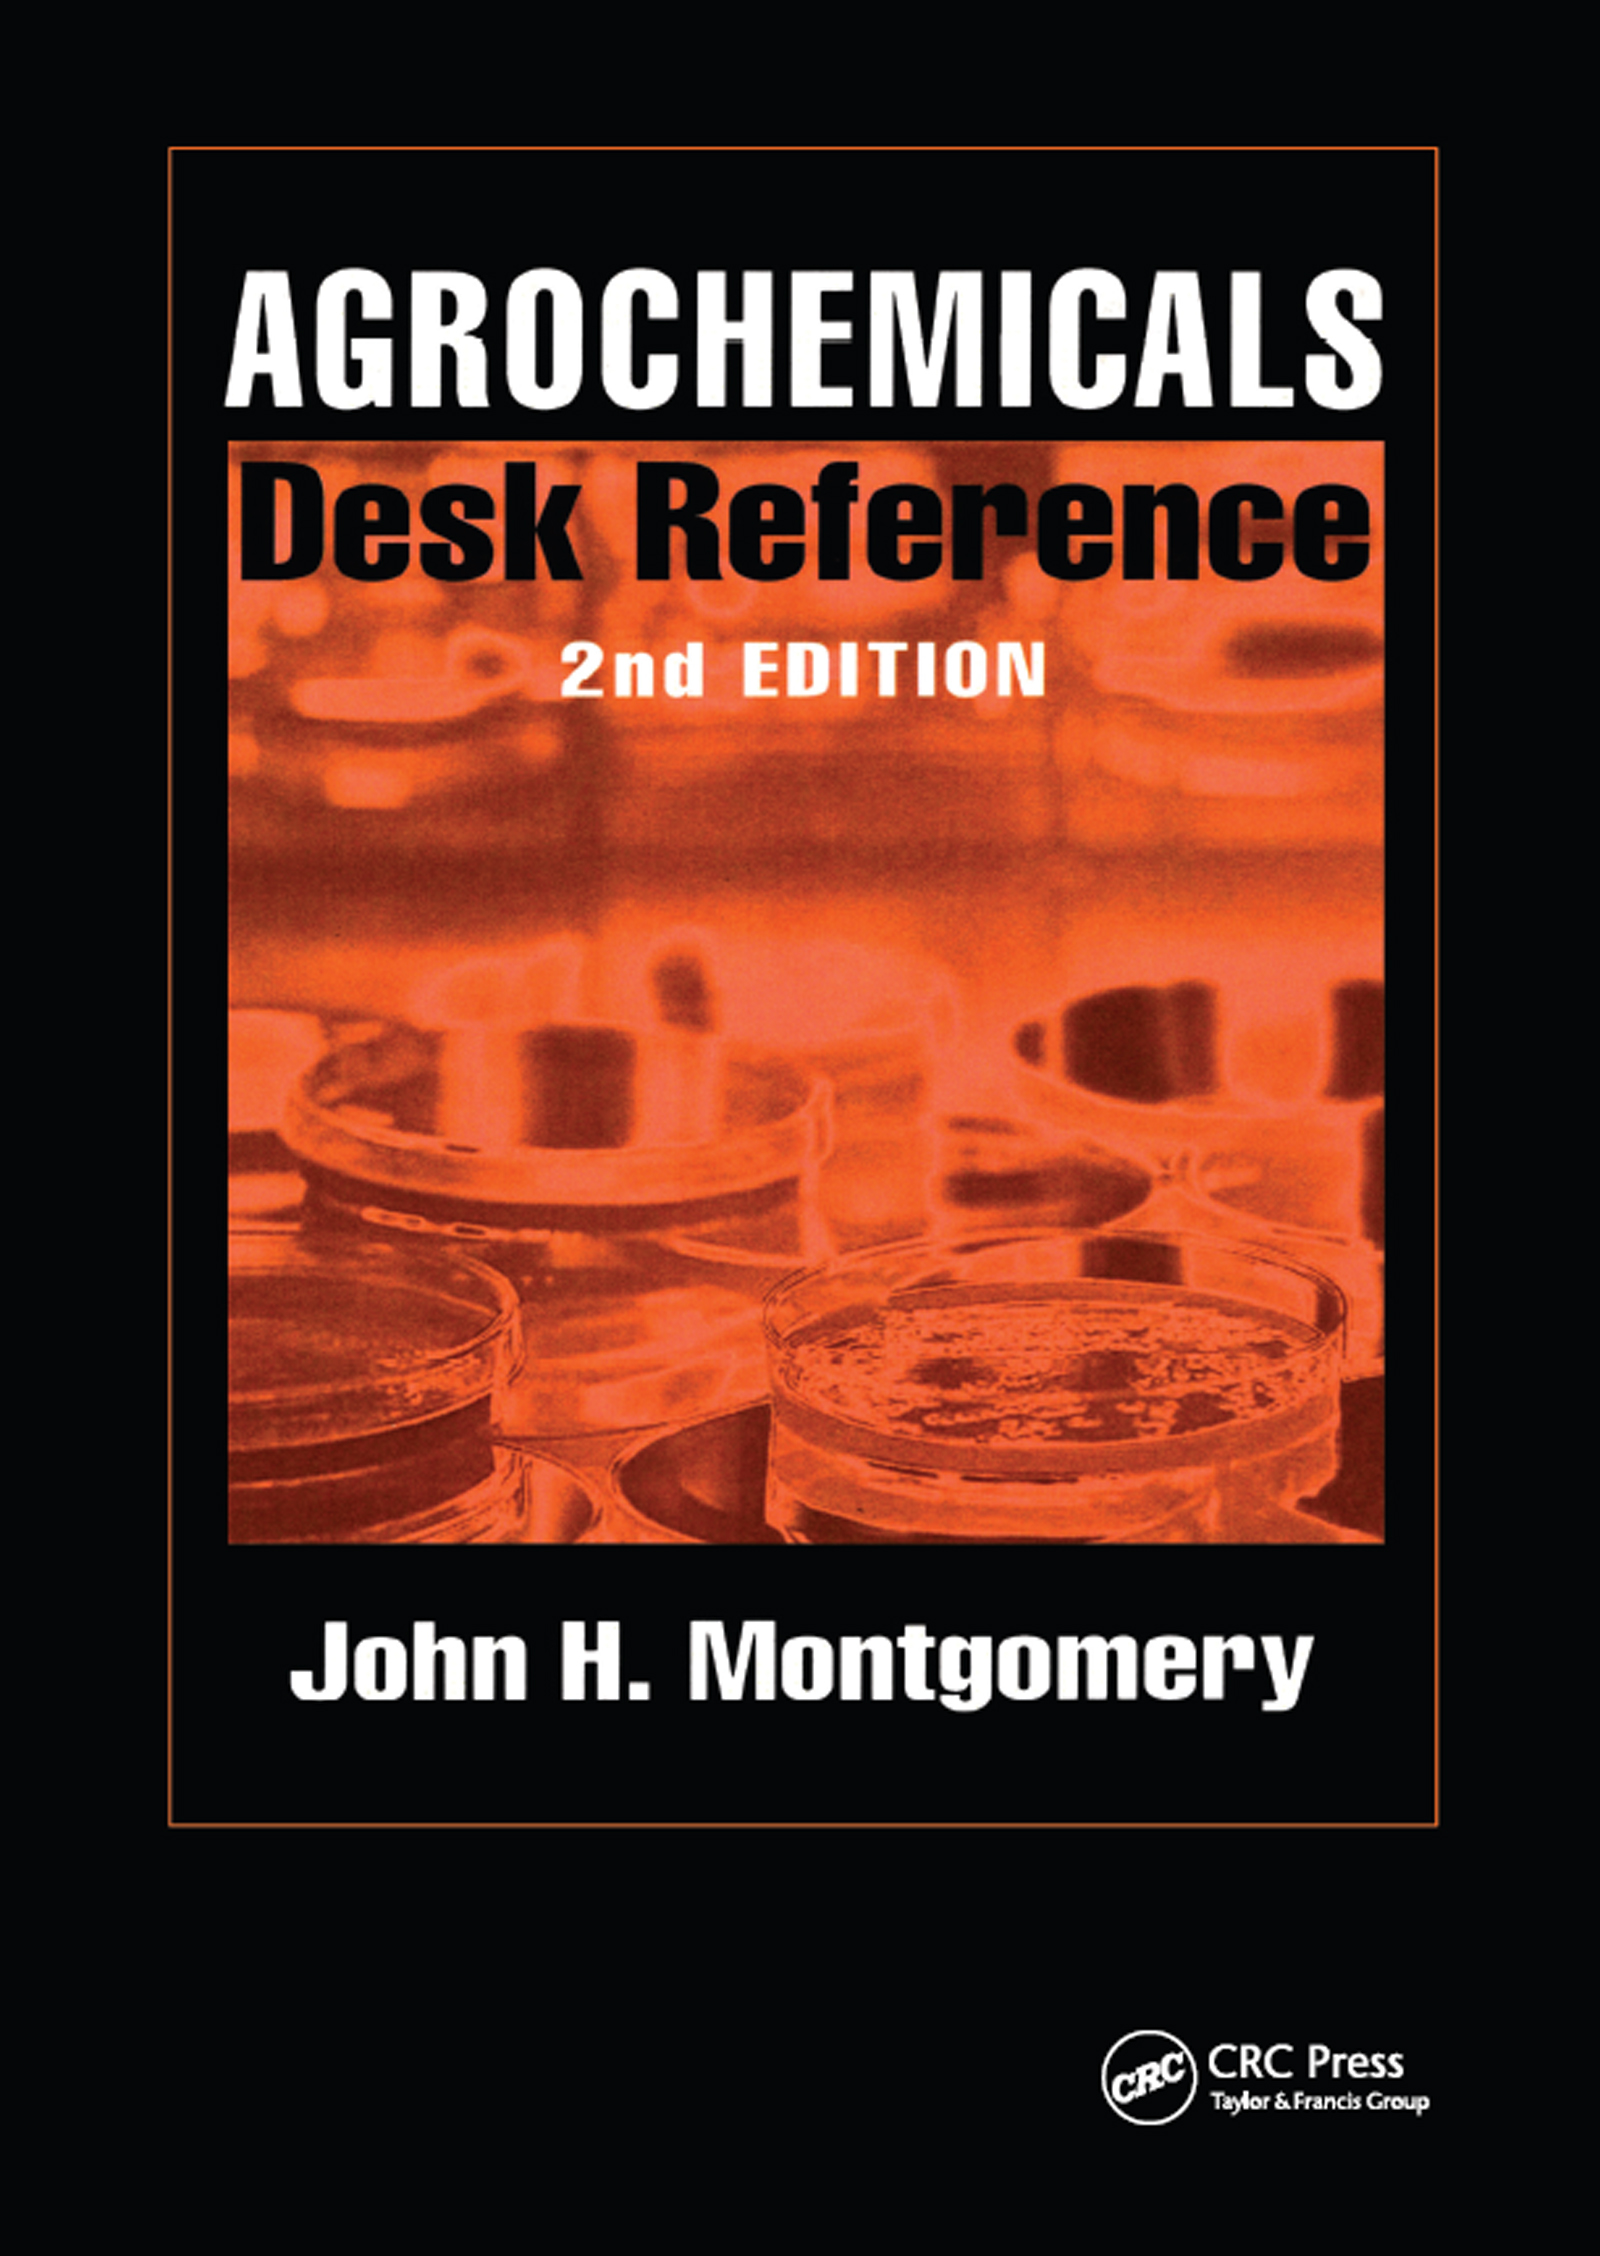 Agrochemicals Desk Reference book cover